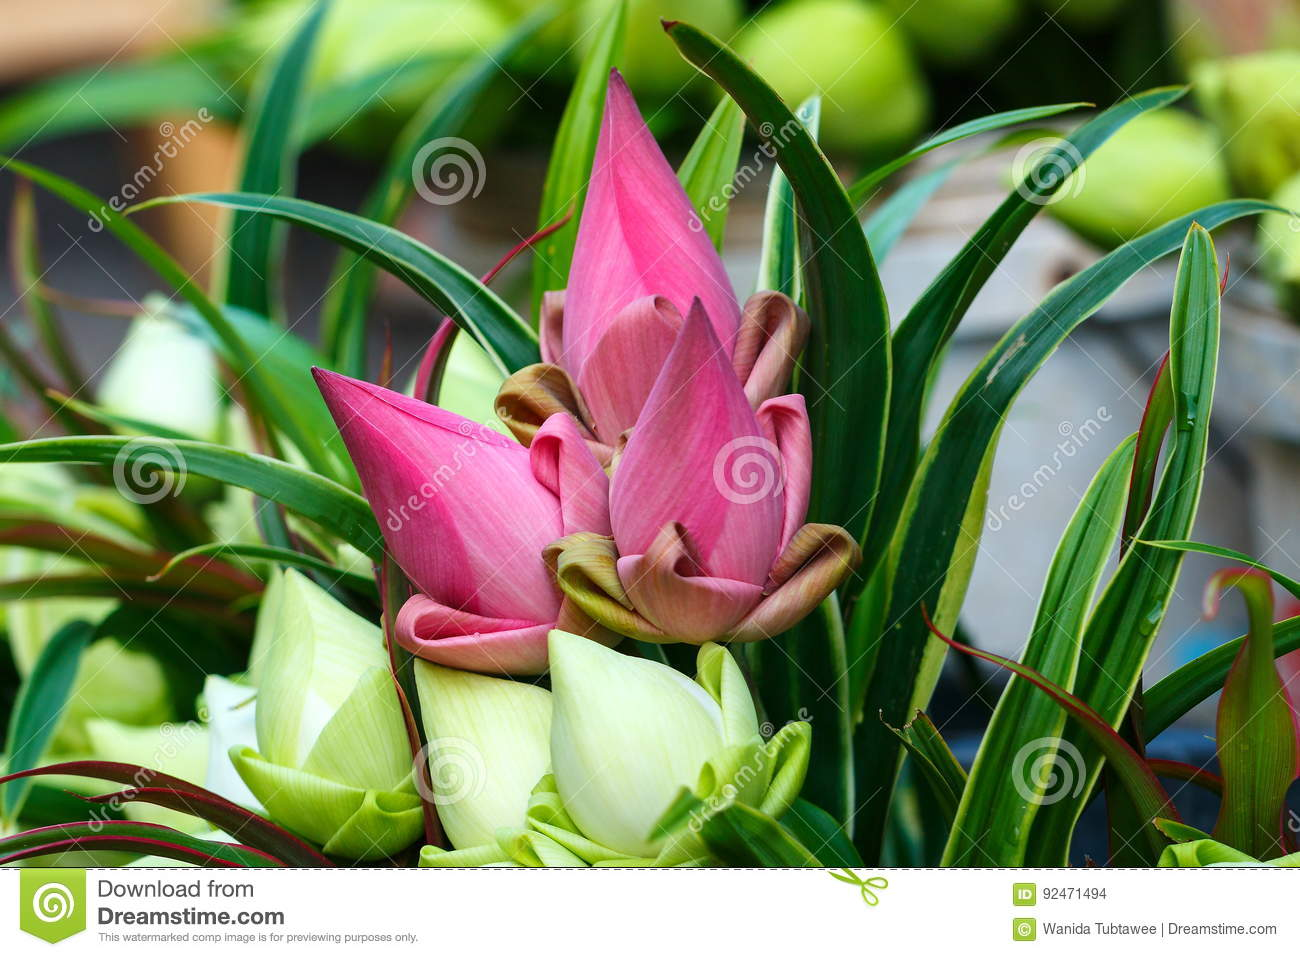 Lotus flowerlotus flower for buddhist worship buddha in temple download lotus flowerlotus flower for buddhist worship buddha in temple traditionof thailand stock izmirmasajfo